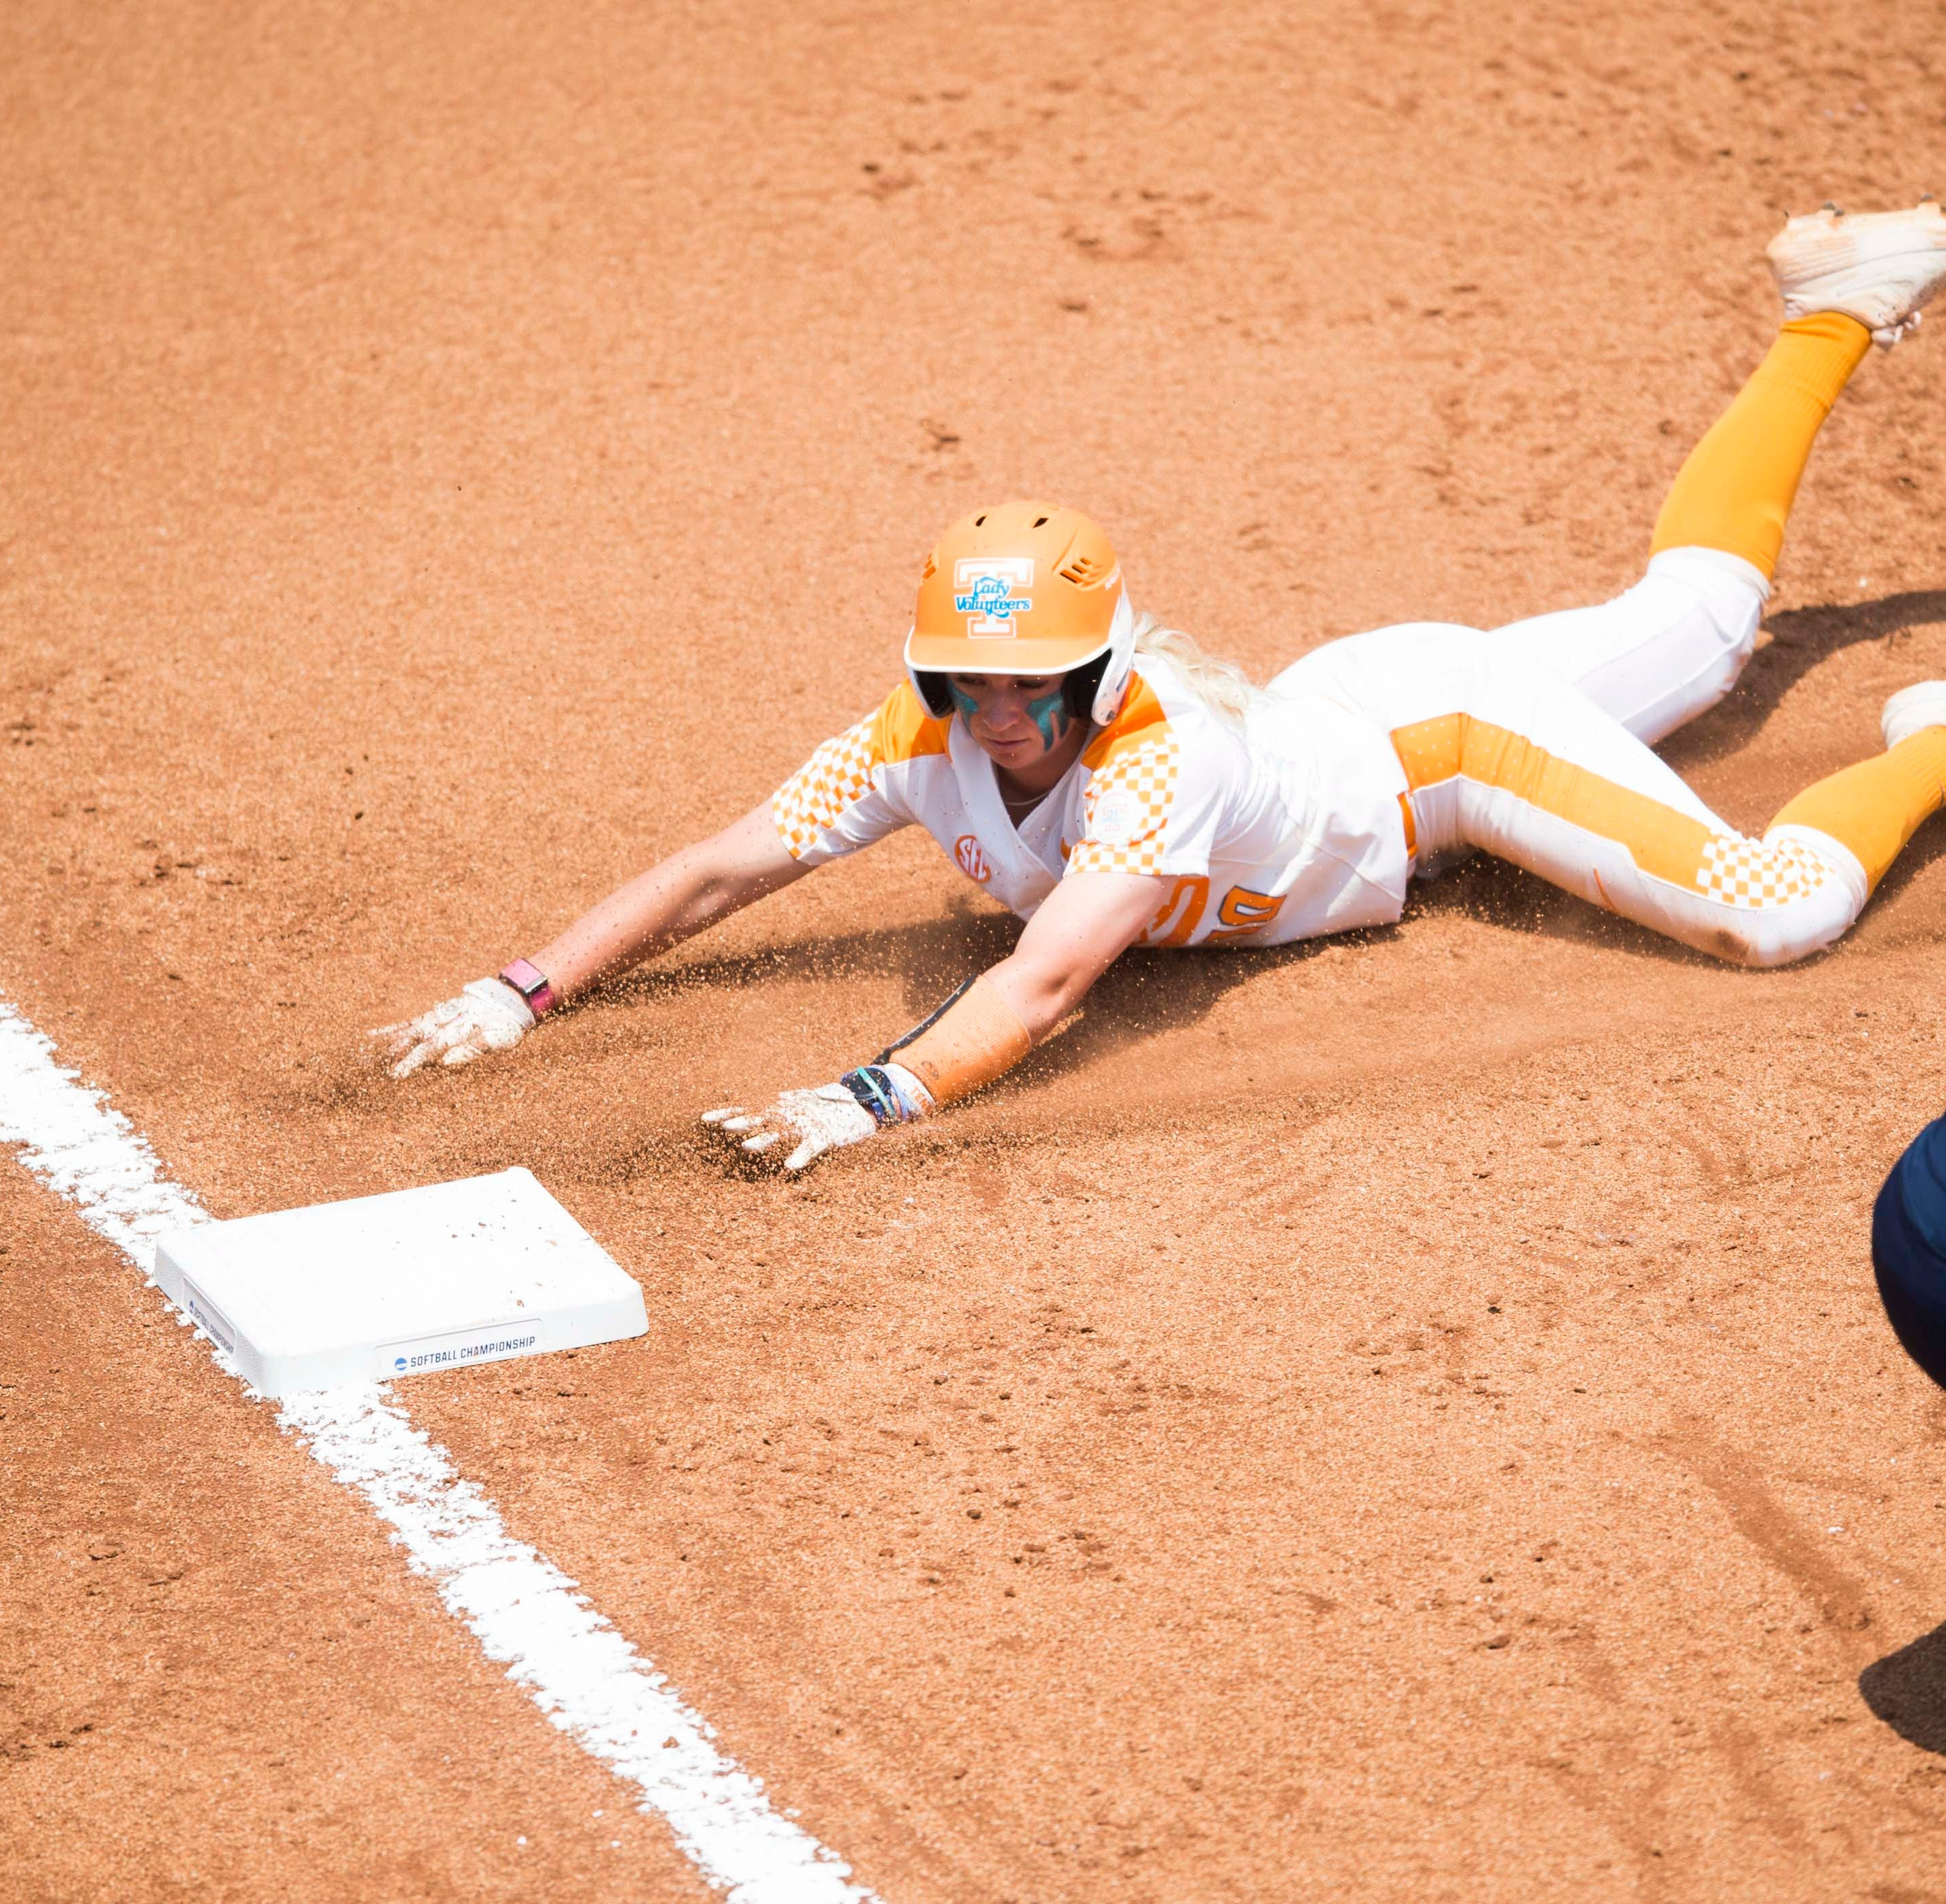 Lady Vols softball advances to Super Regional on Ashley Morgan's clutch double